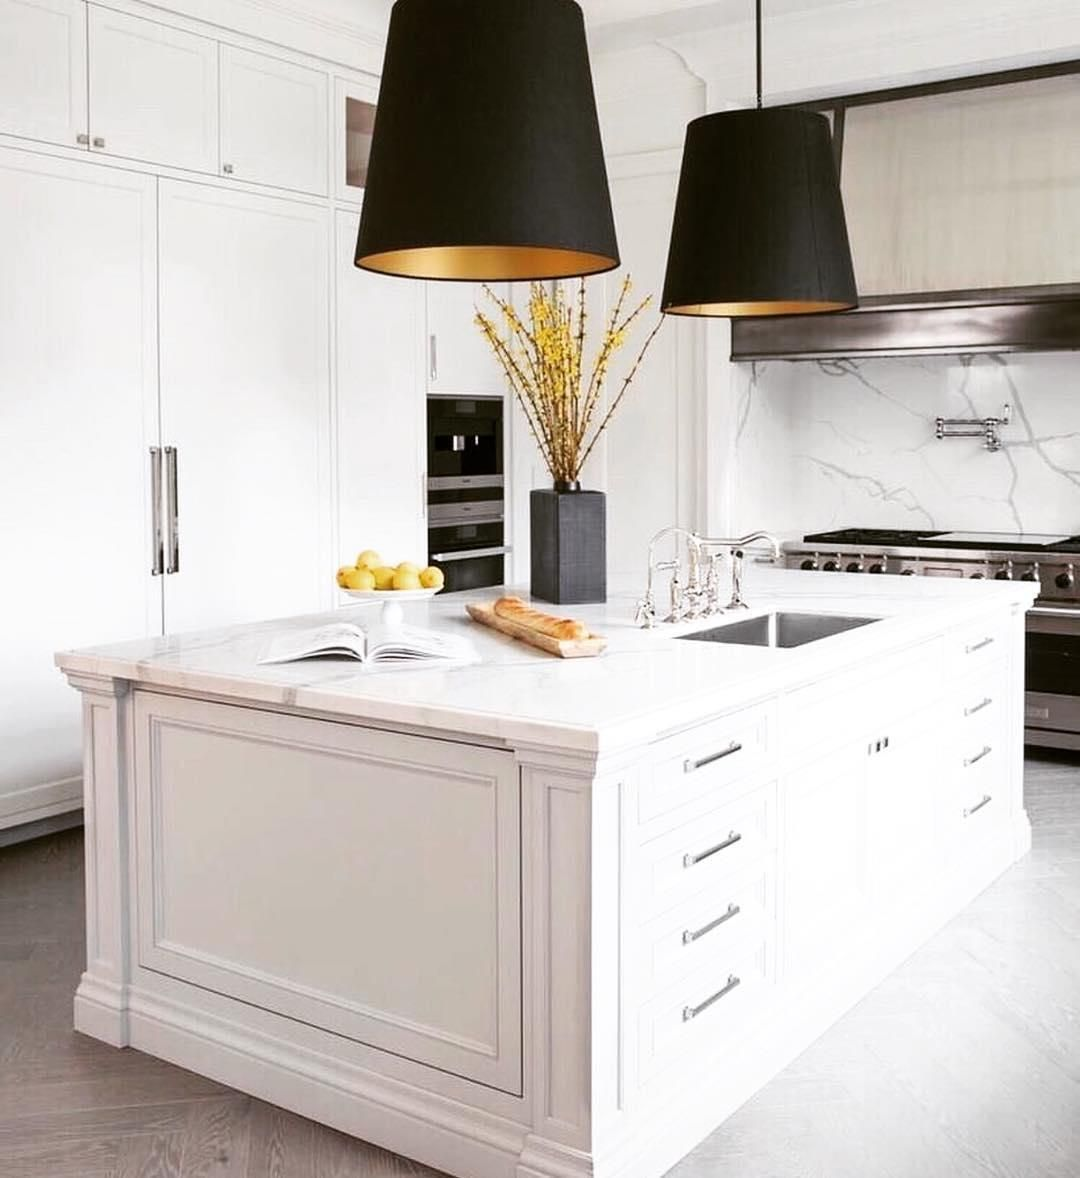 The Grey Interiors On Instagram A Great Example Of A Small Yet Functional And Timeless Kitchen De Kitchen Remodel Small White Kitchen Design Kitchen Interior